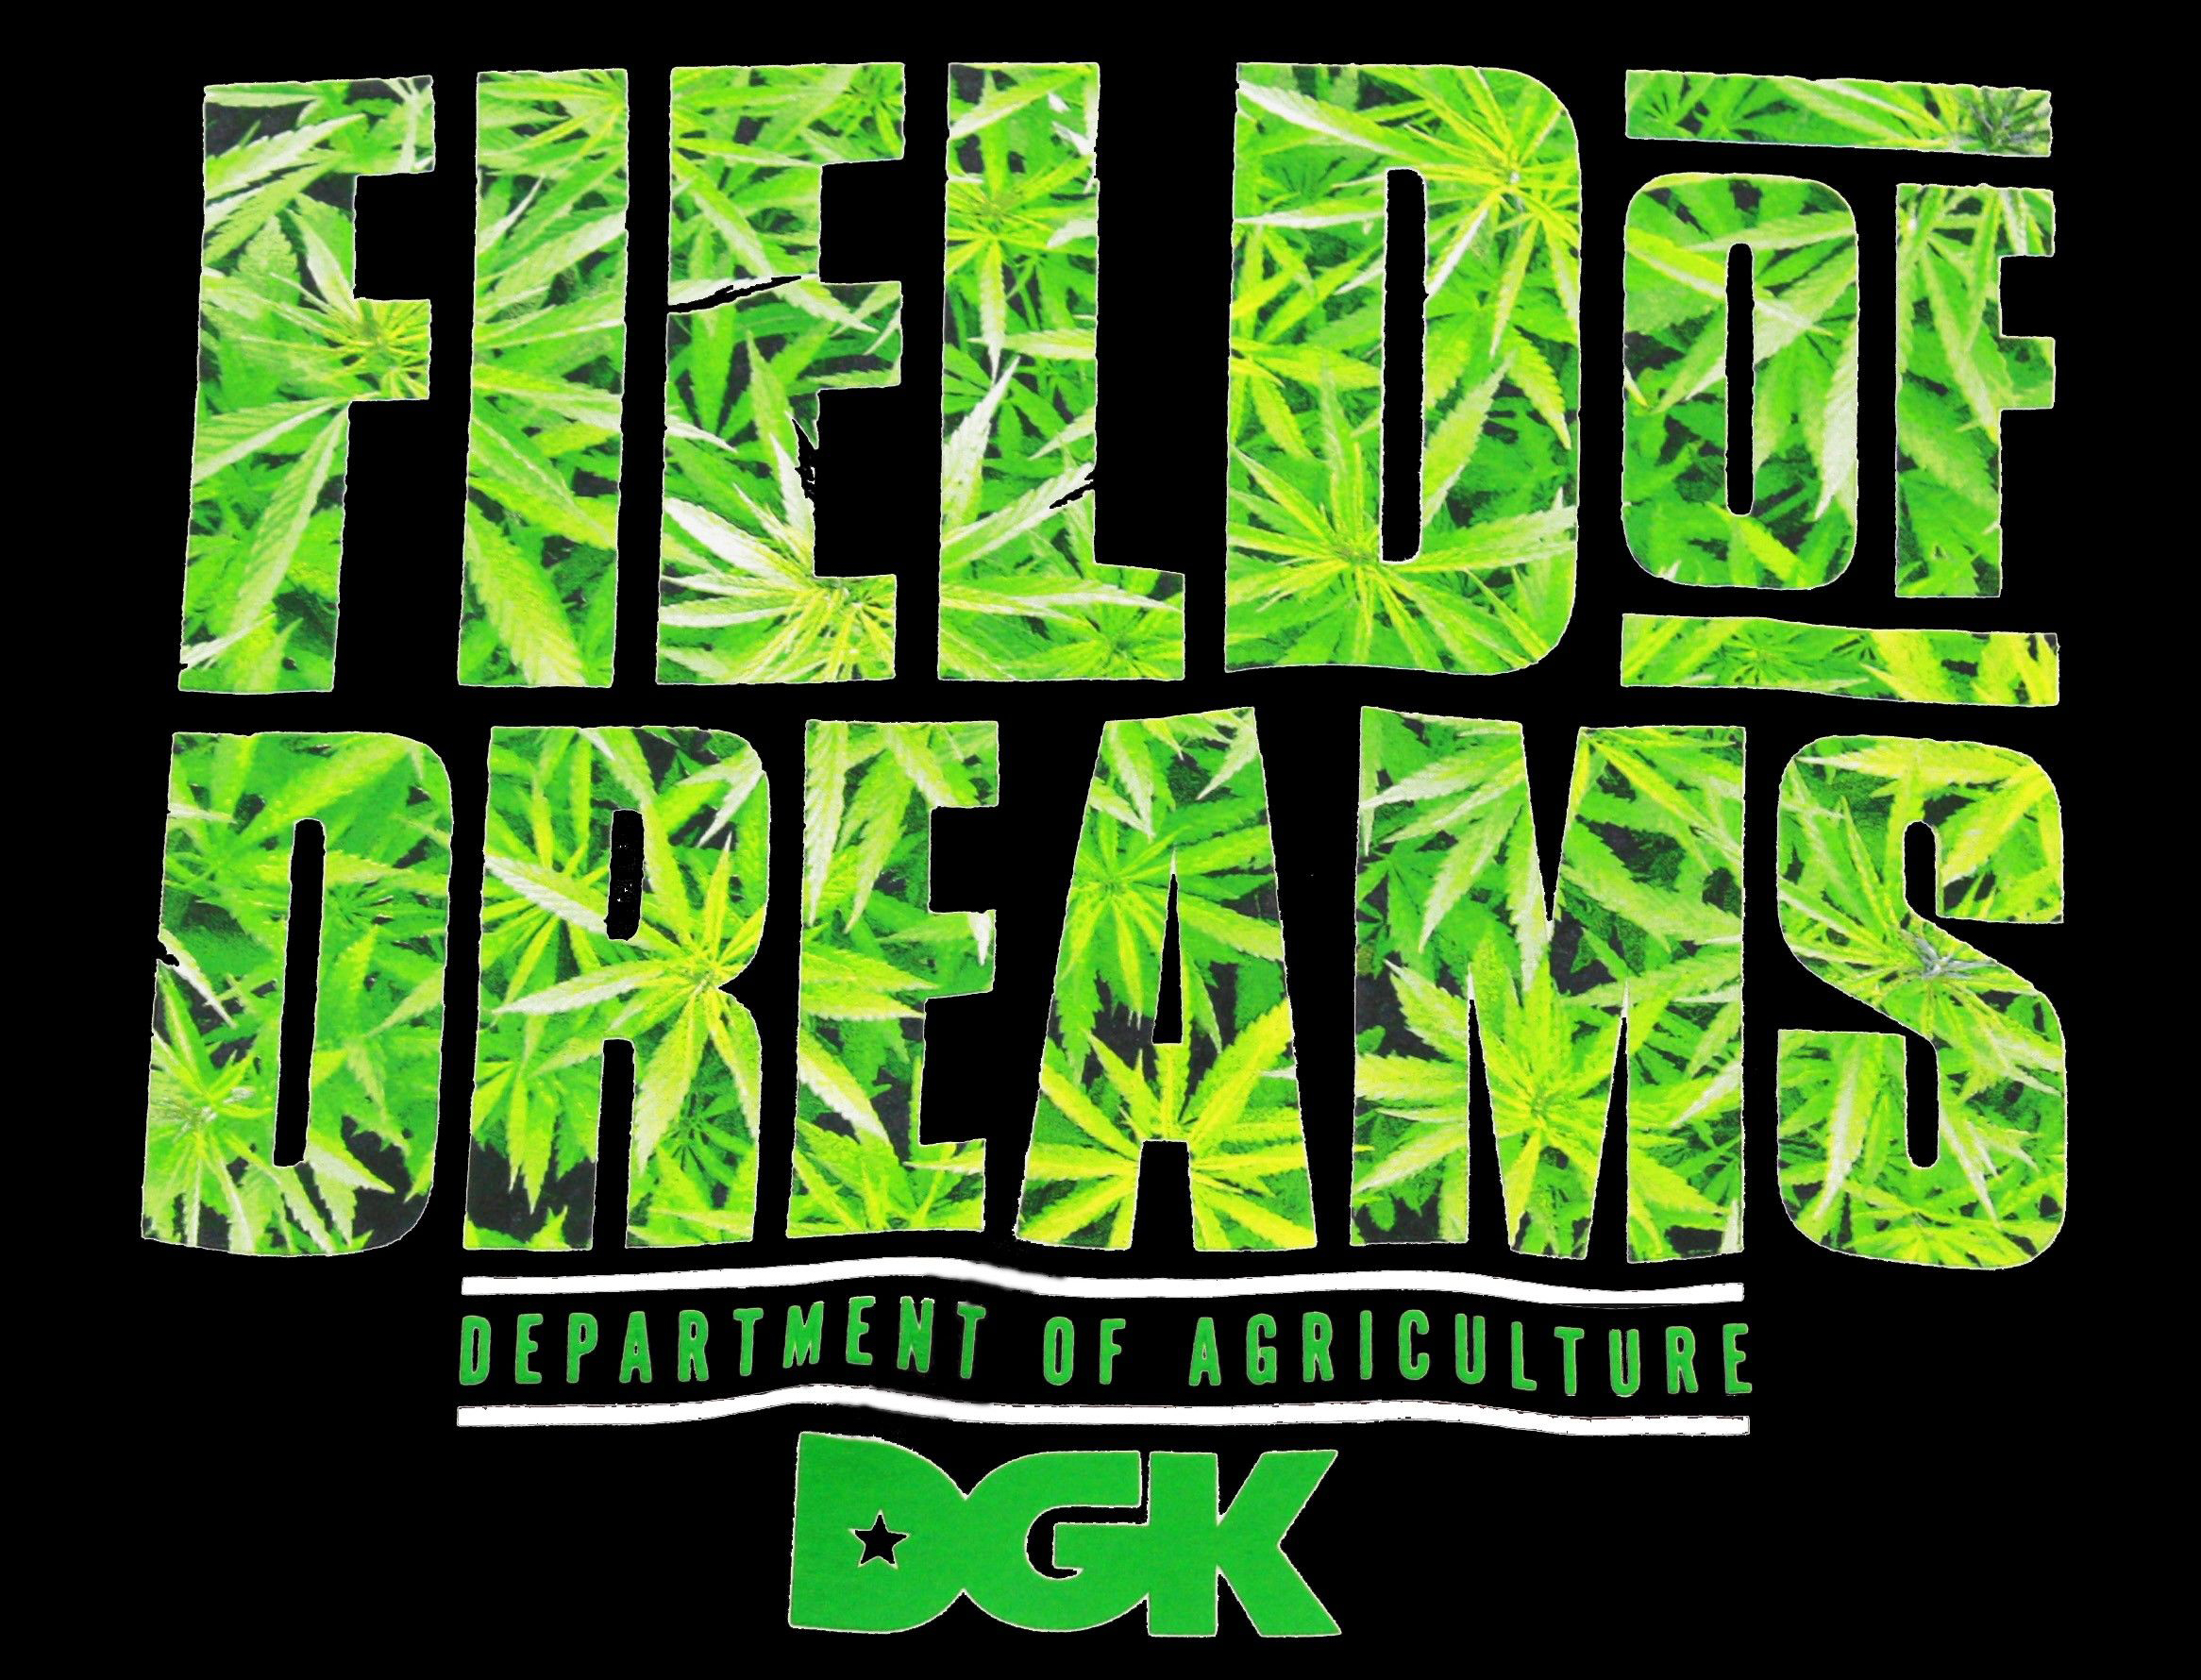 Dgk Wallpaper Iphone Dgk Wallpaper Hd Pixelstalk Net